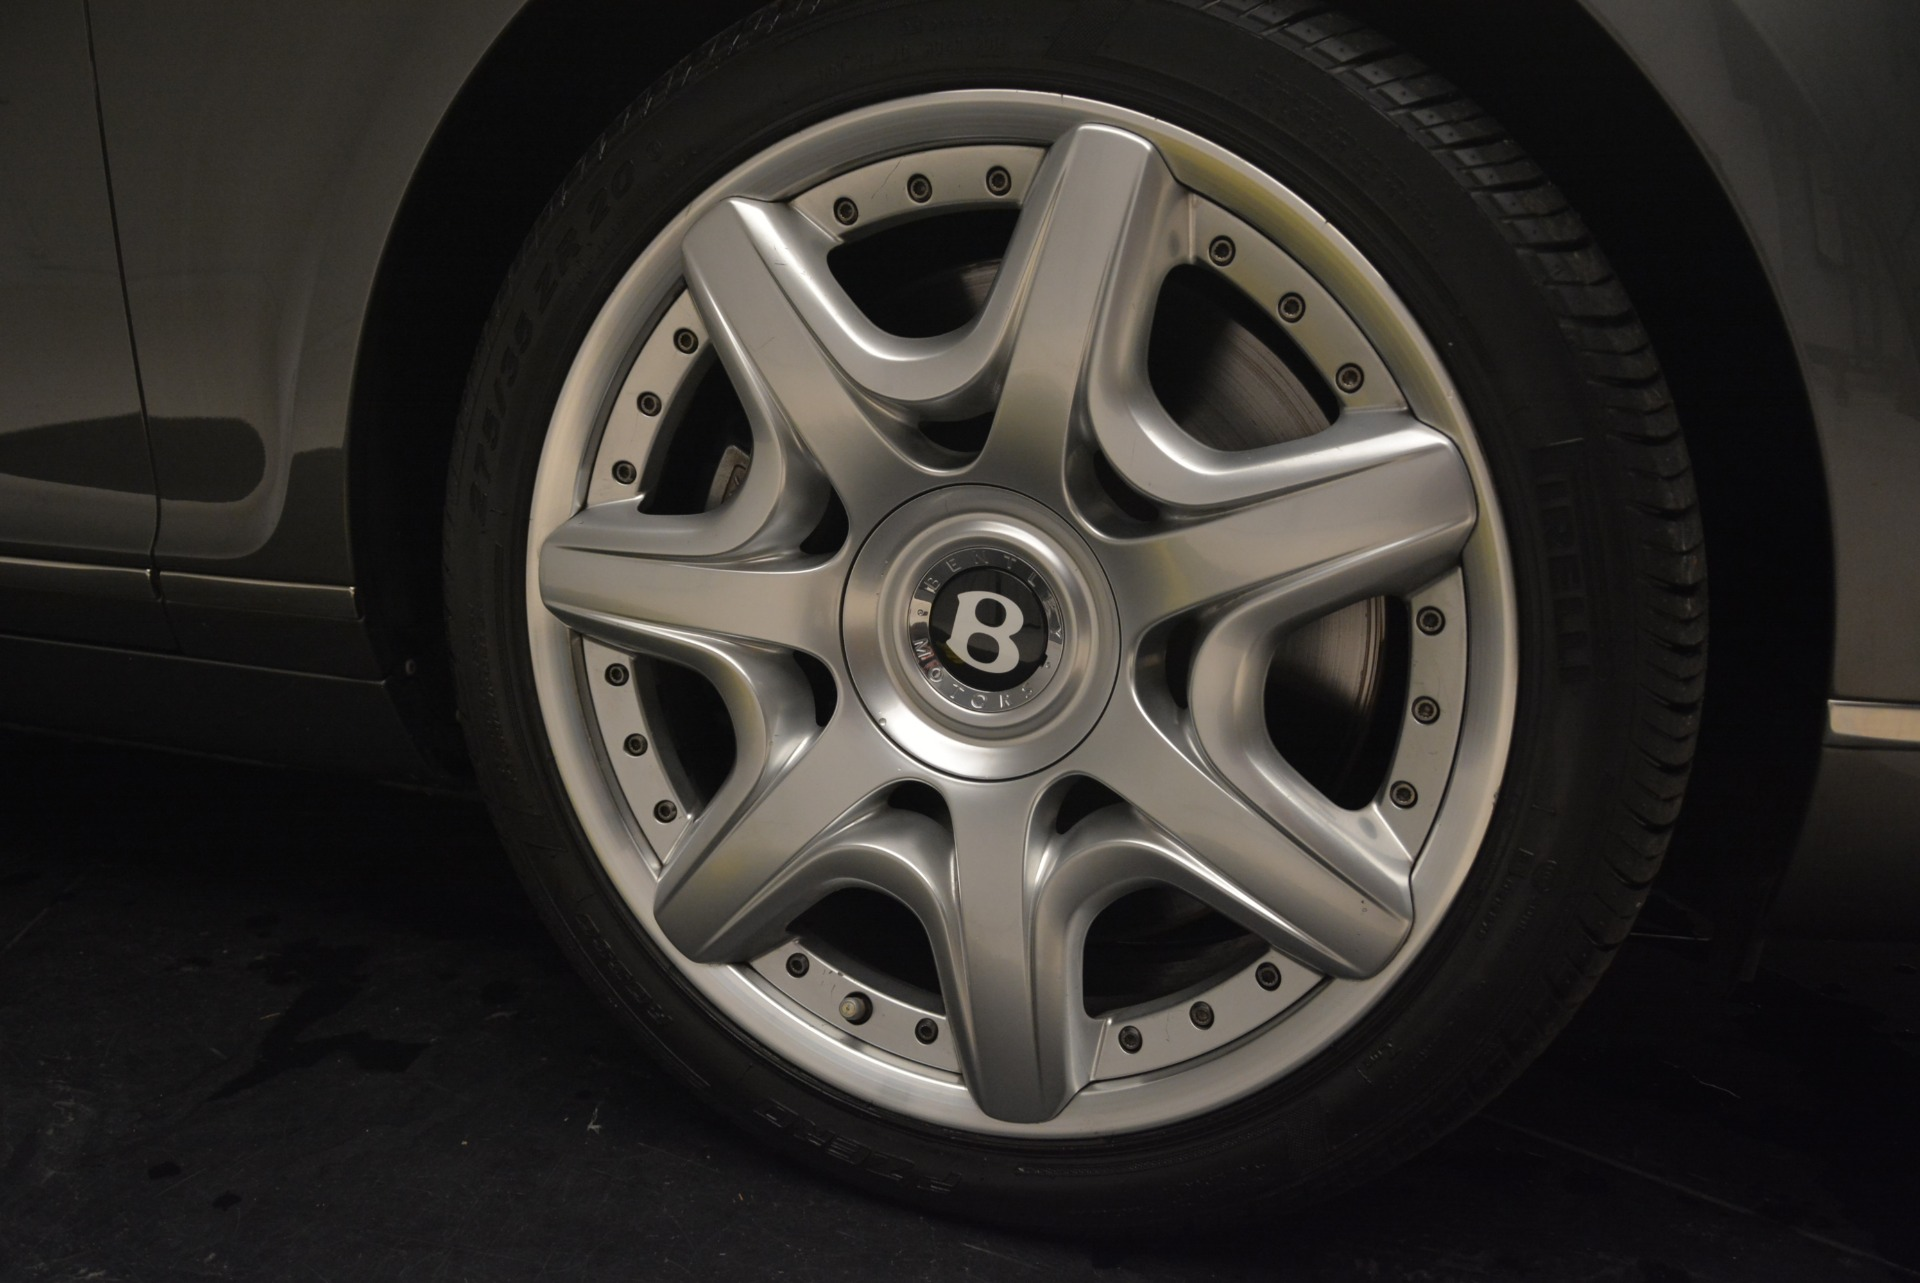 Used 2008 Bentley Continental GT W12 For Sale In Westport, CT 2190_p27